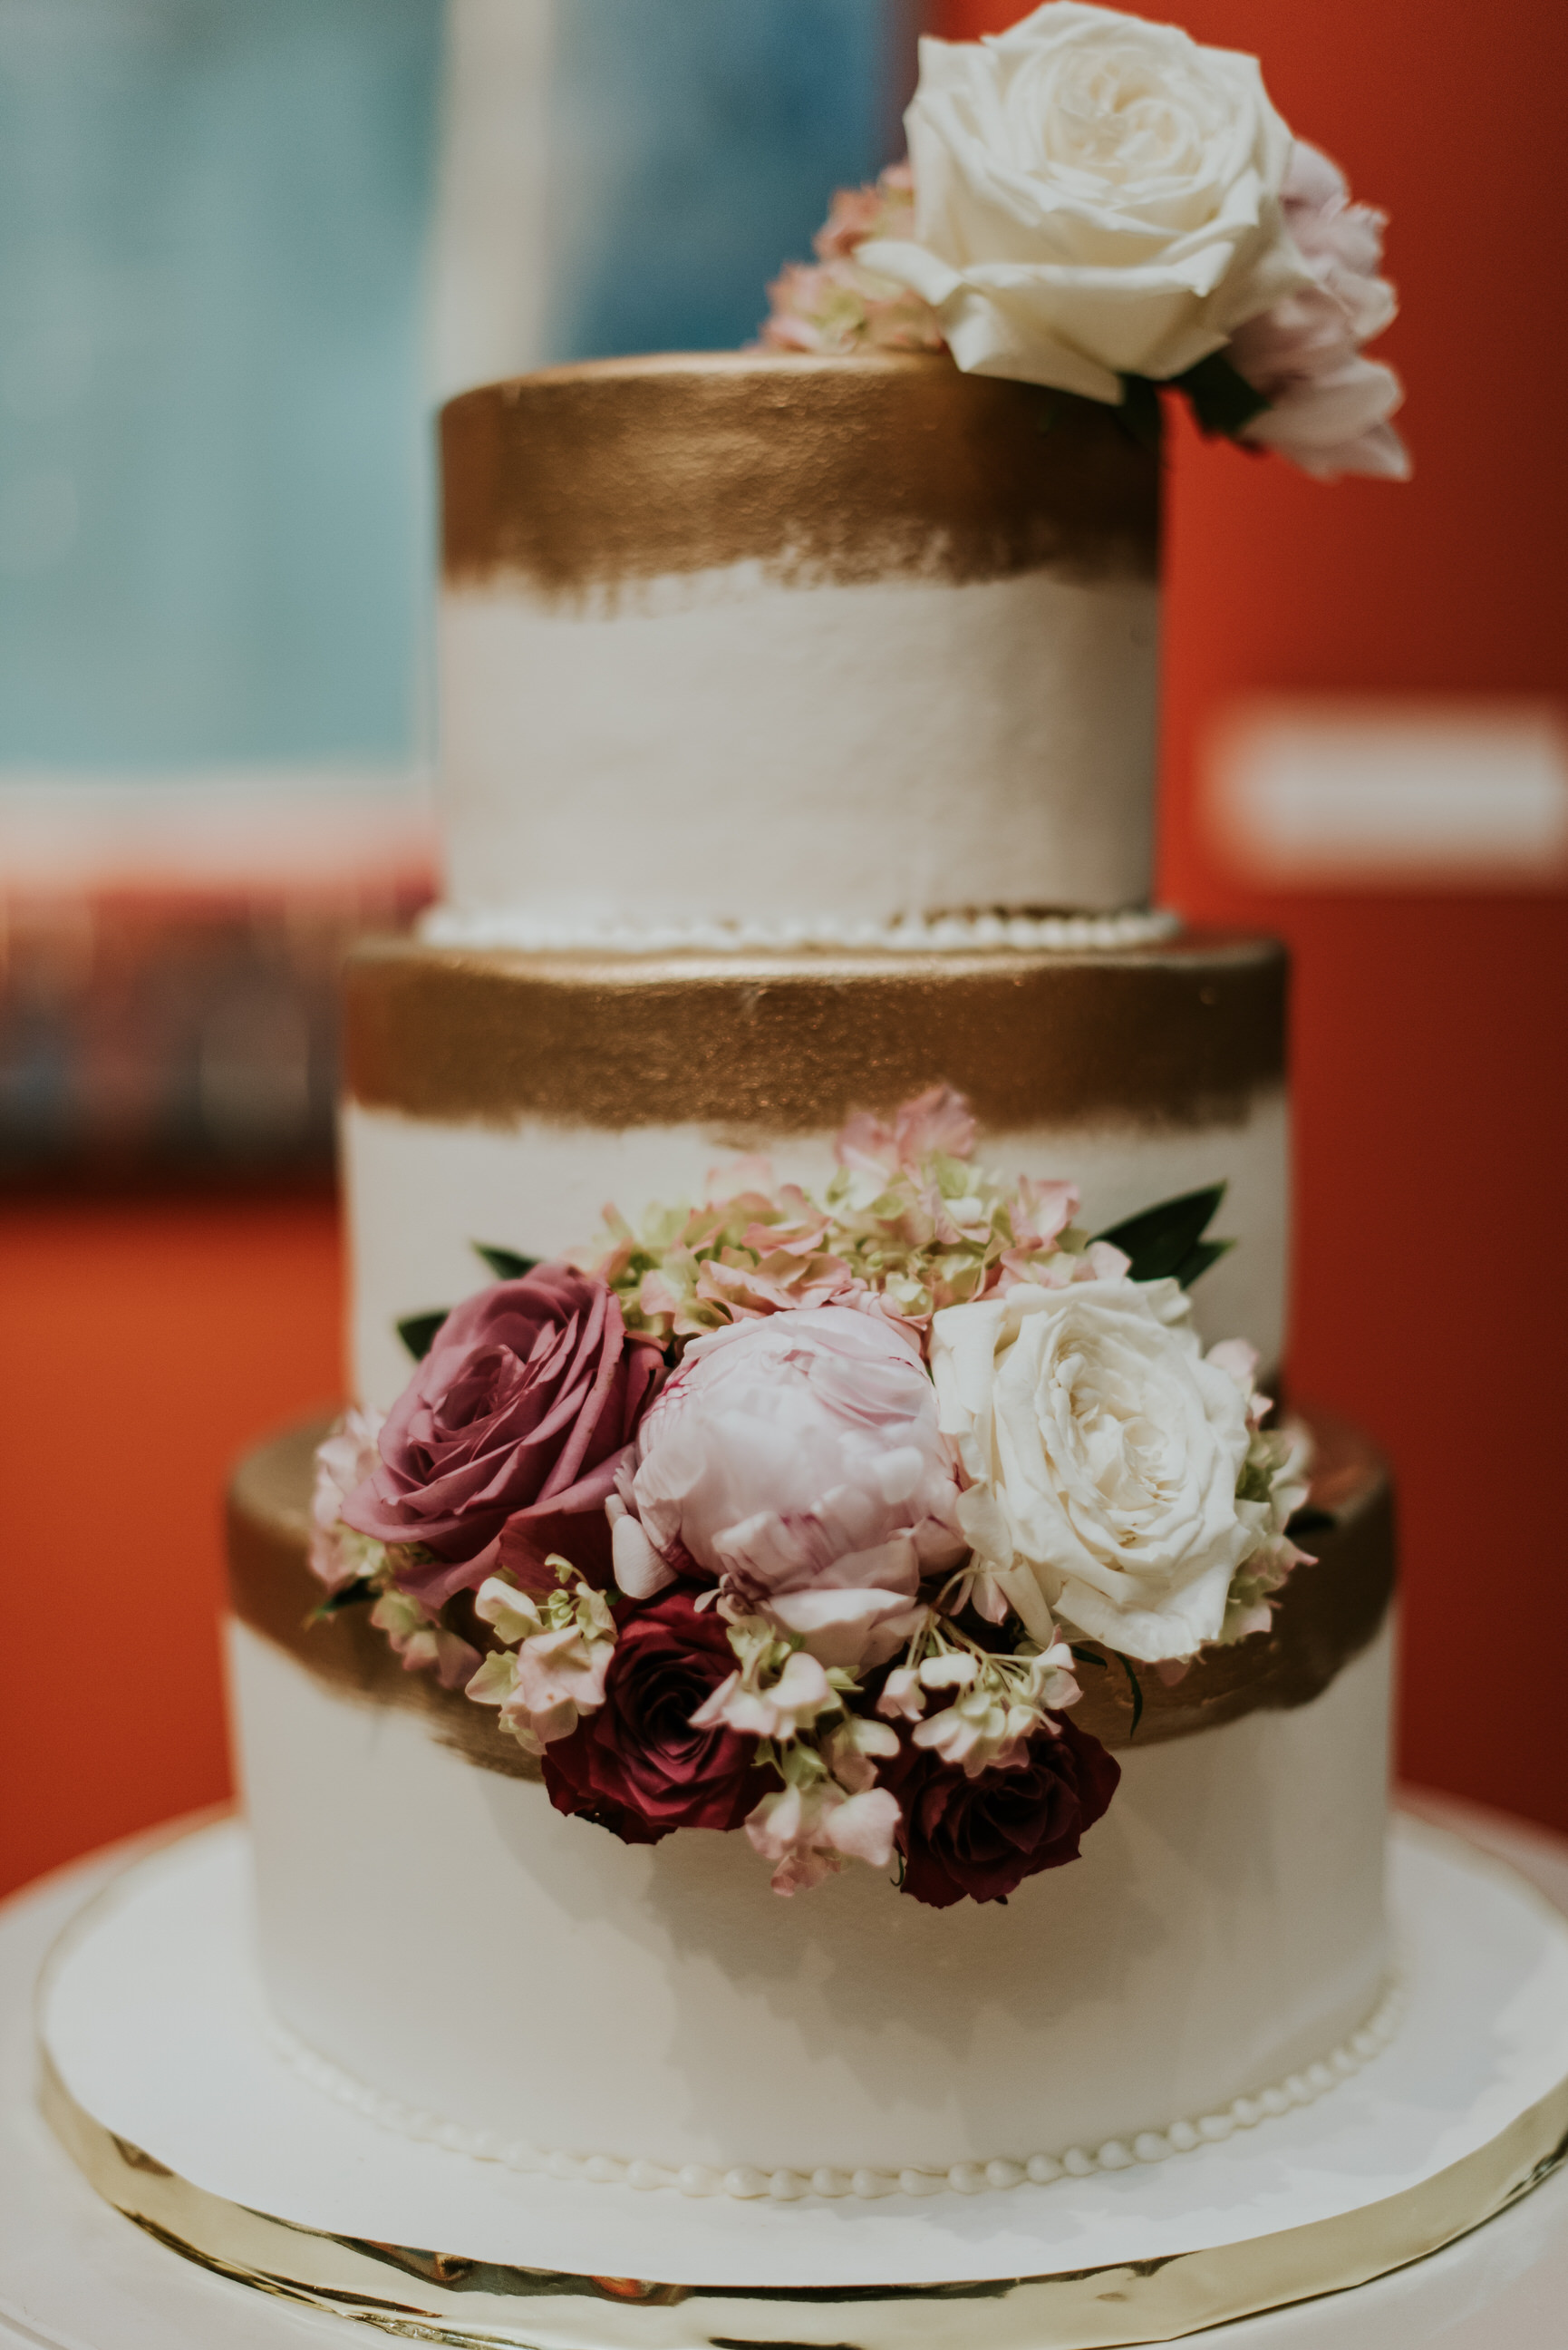 38 Philadelphia Wedding Cake Flowers Desserts by Dana Gold Paint Cake.jpg